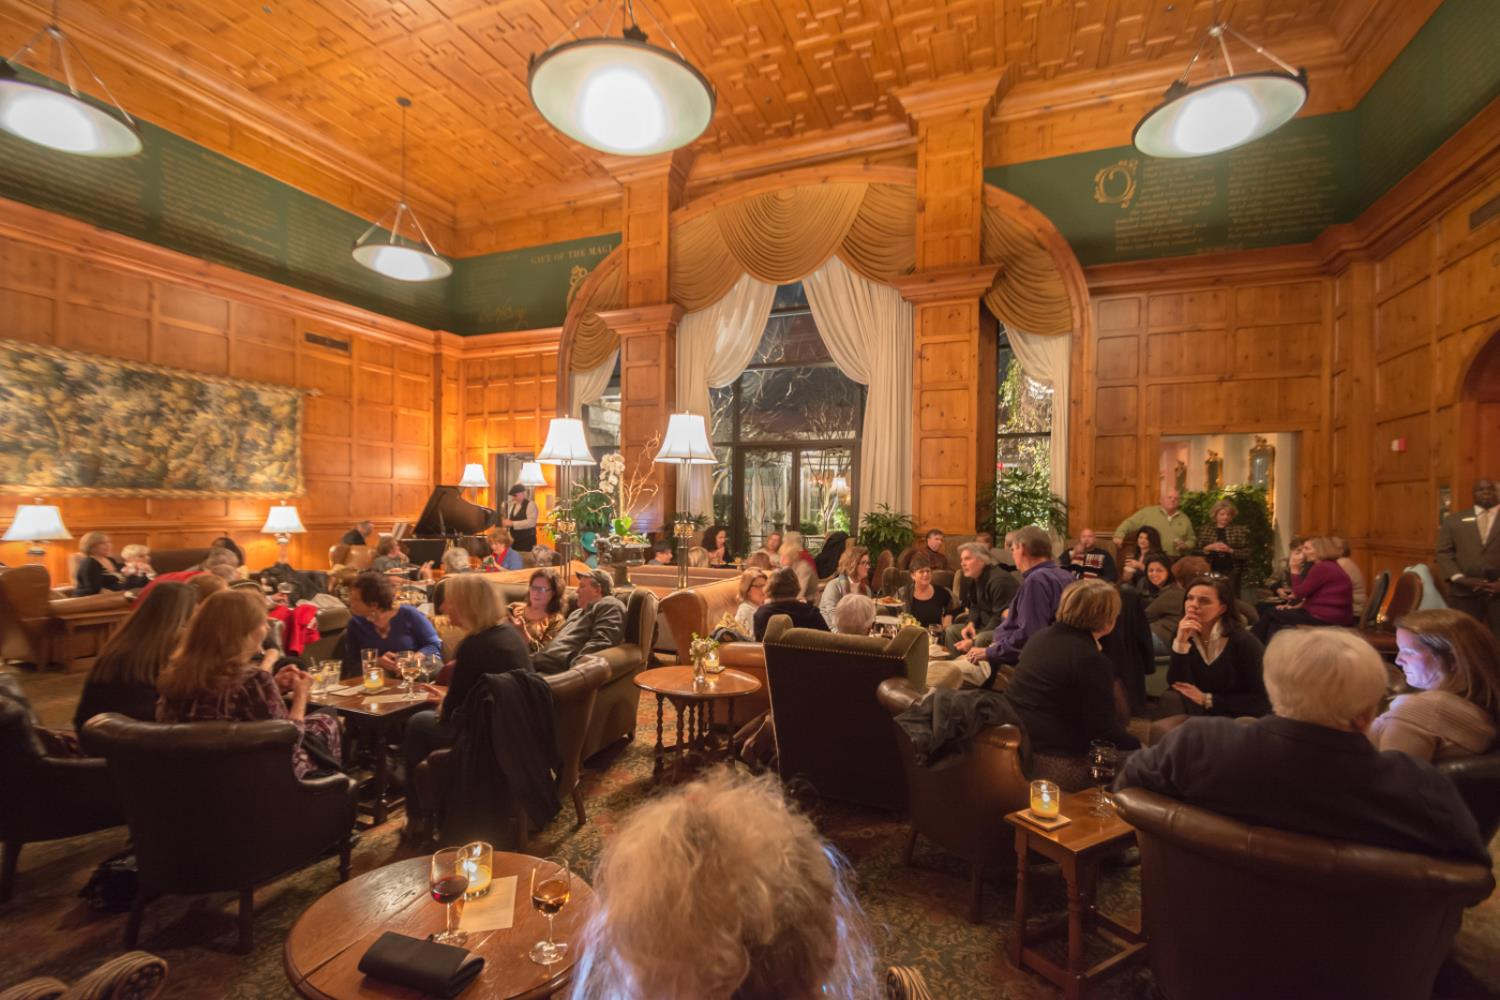 Cocktails and Jazz at O.Henry Hotel in Greensboro, NC